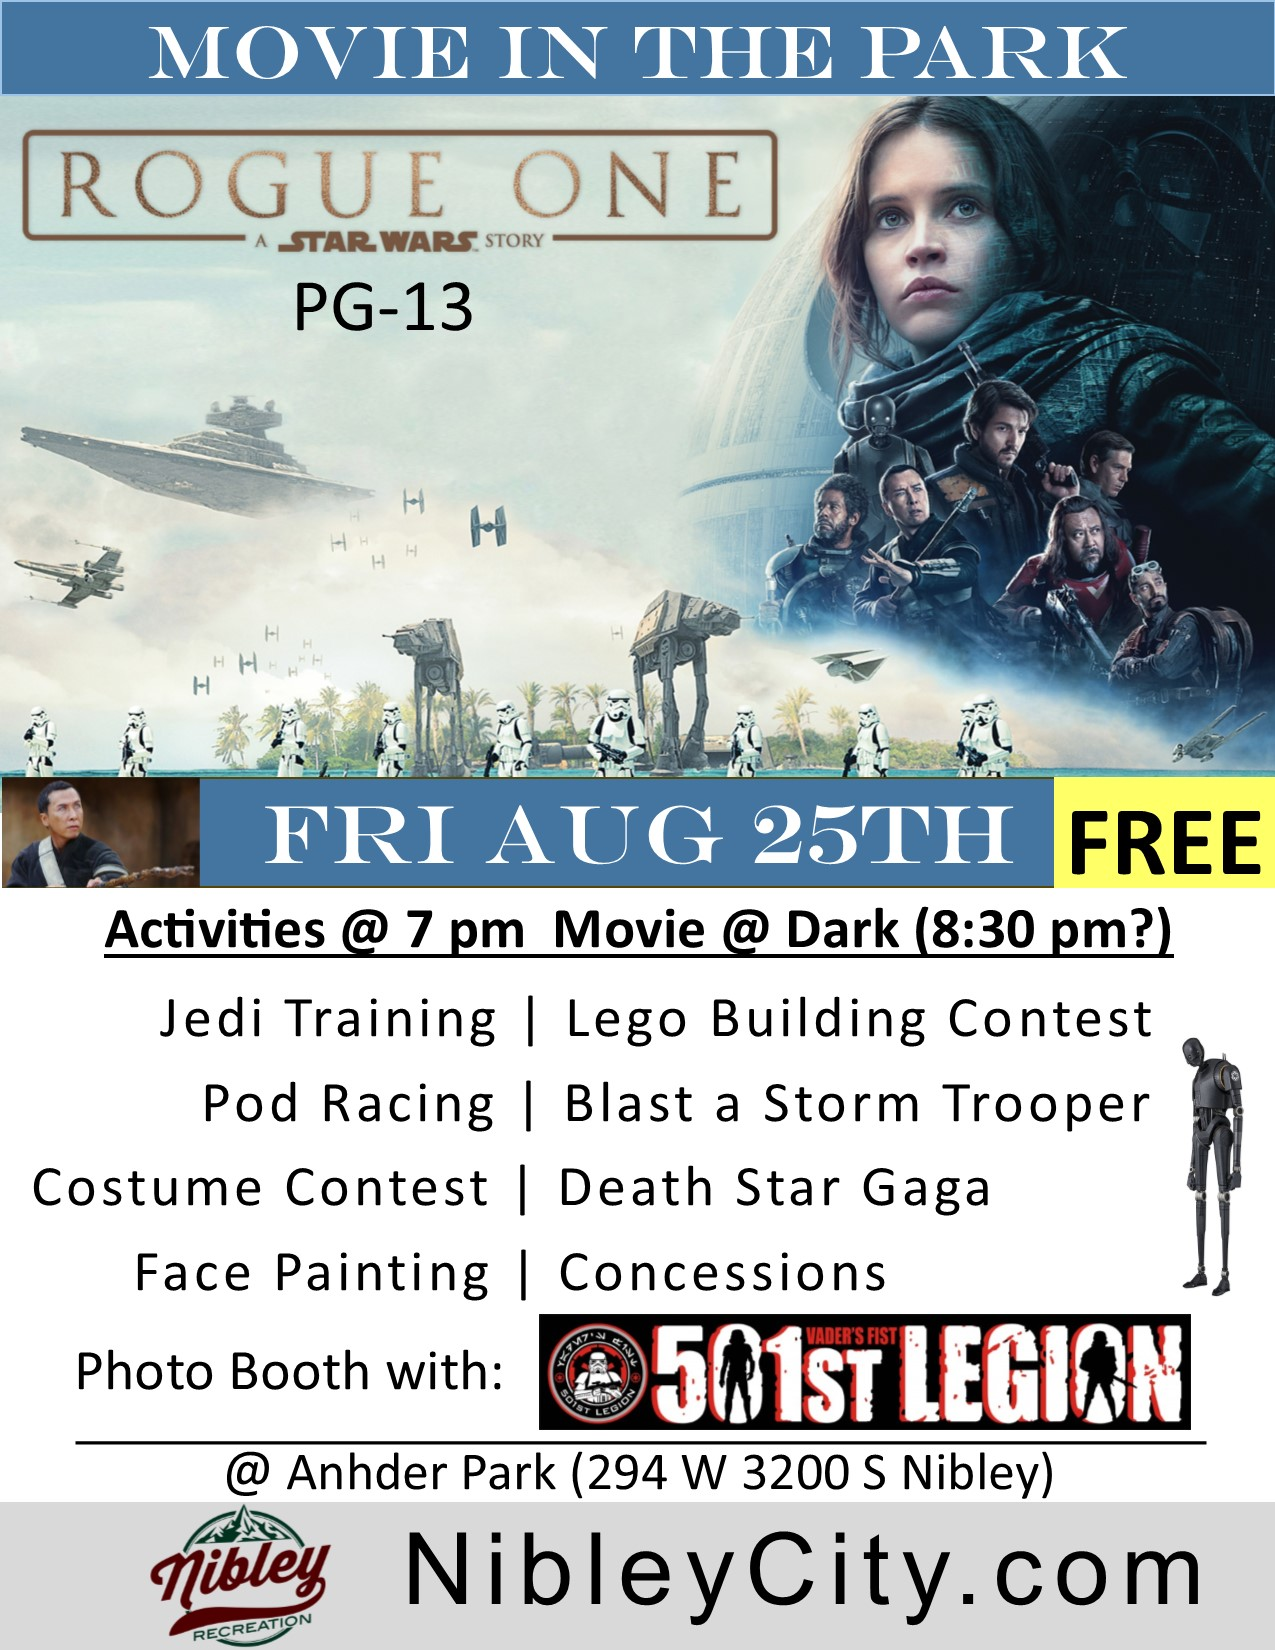 Star Wars Rogue One Nibley Movie in Park 8.5x11 Flyer